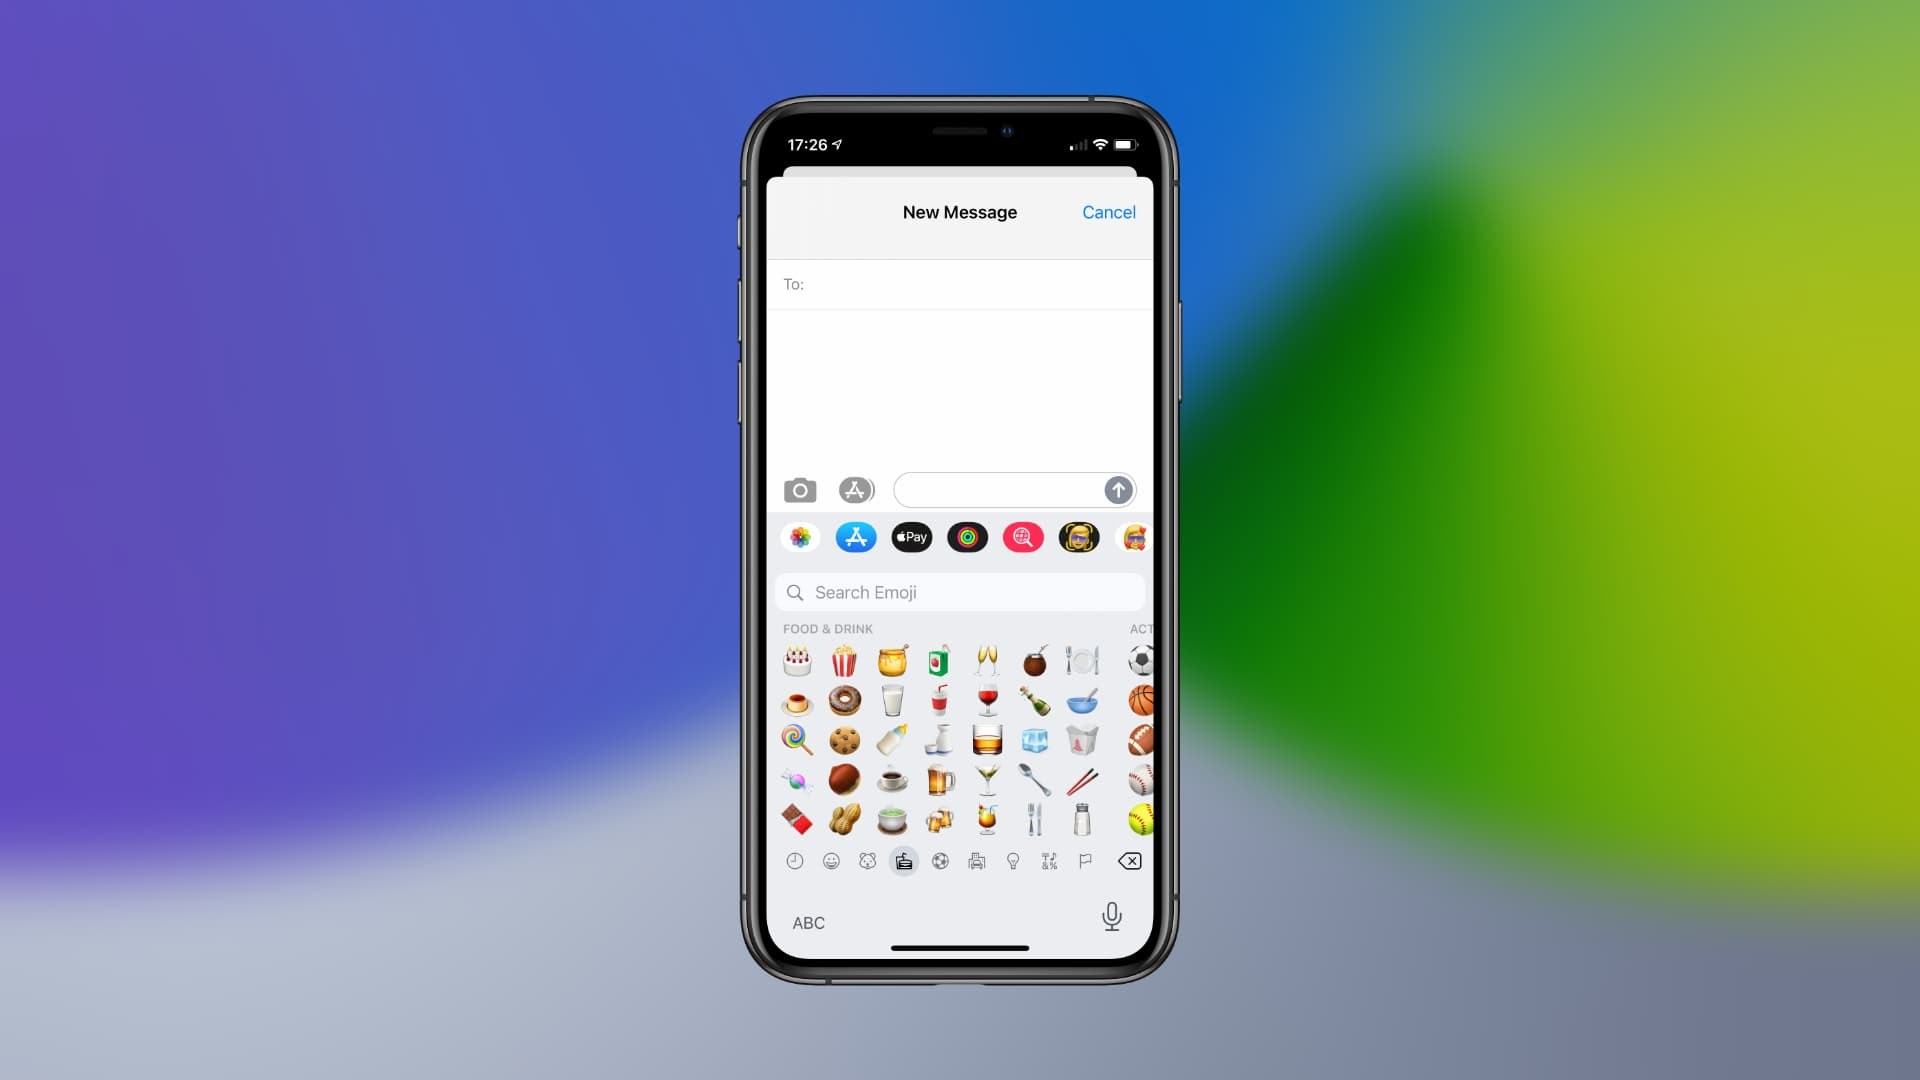 Search for emoji in iOS 14